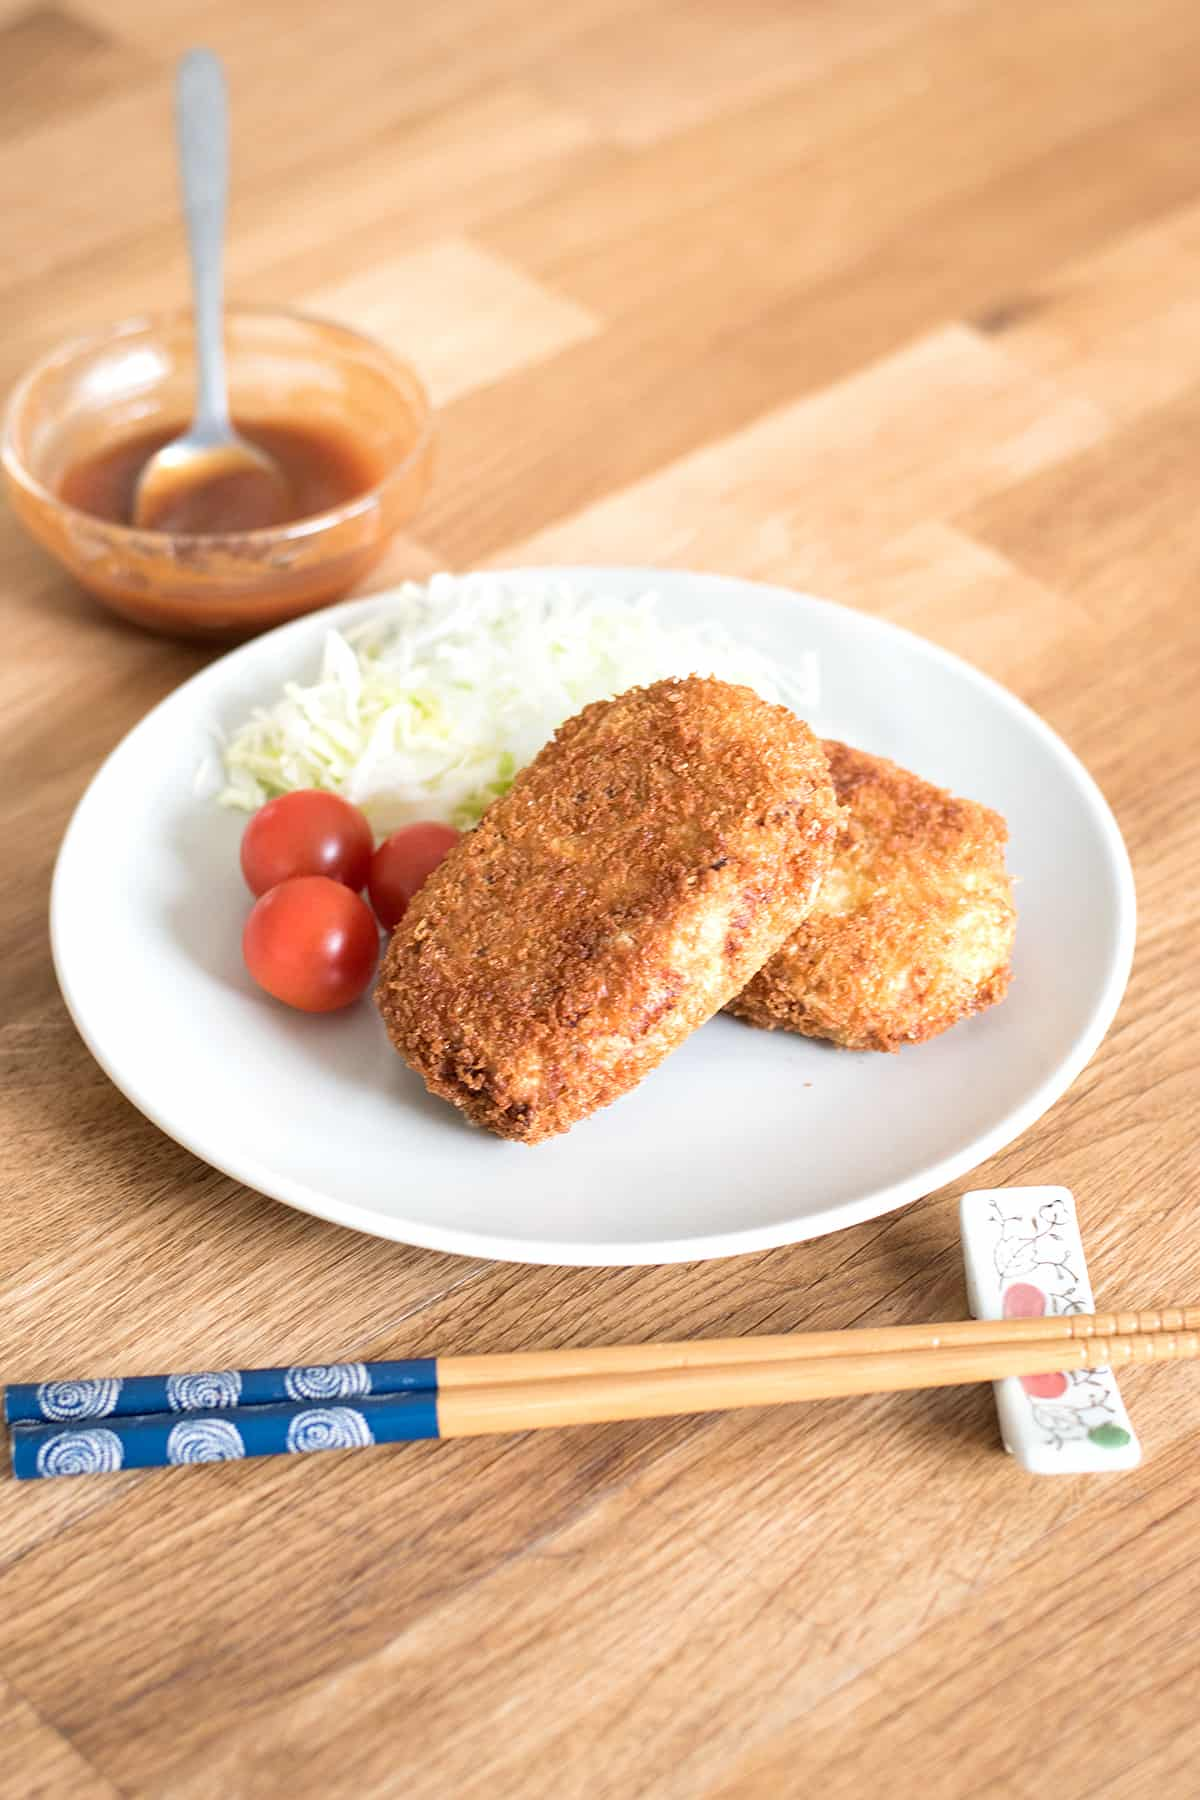 Finished picture of korokke dish (Japanese potato croquettes) with tonkatsu sauce in the background.